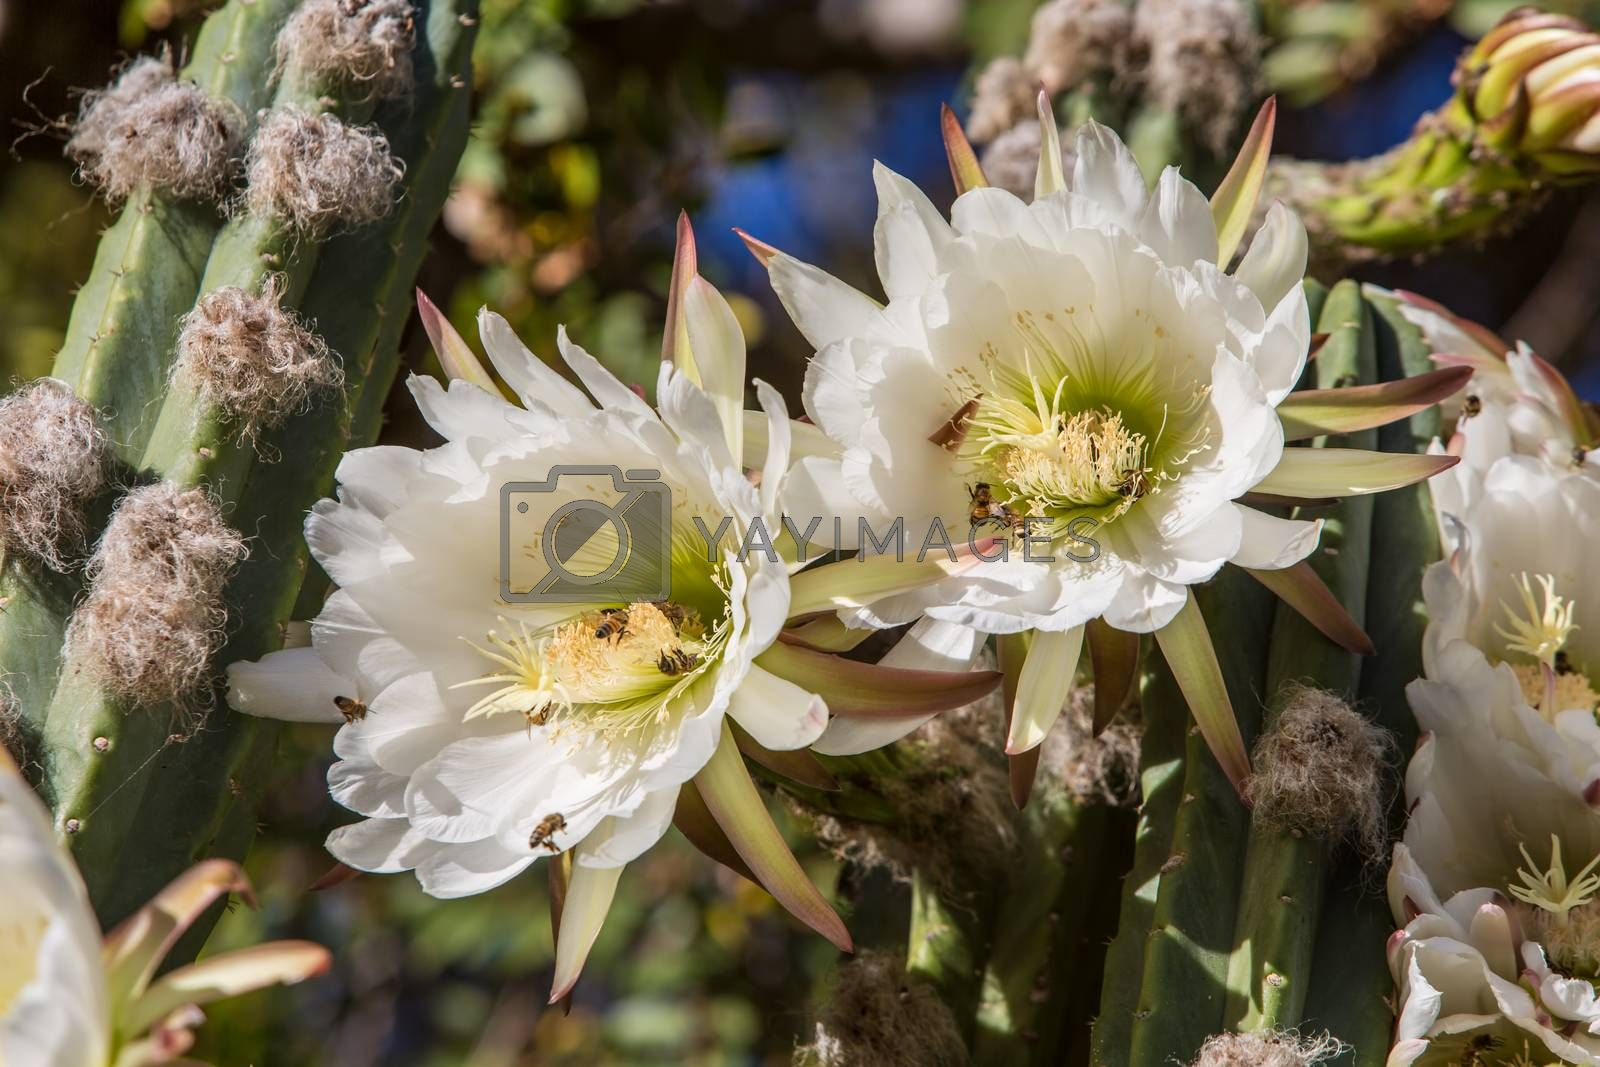 Royalty free image of Rare Night Blooming Cereus Cactus by Creatista